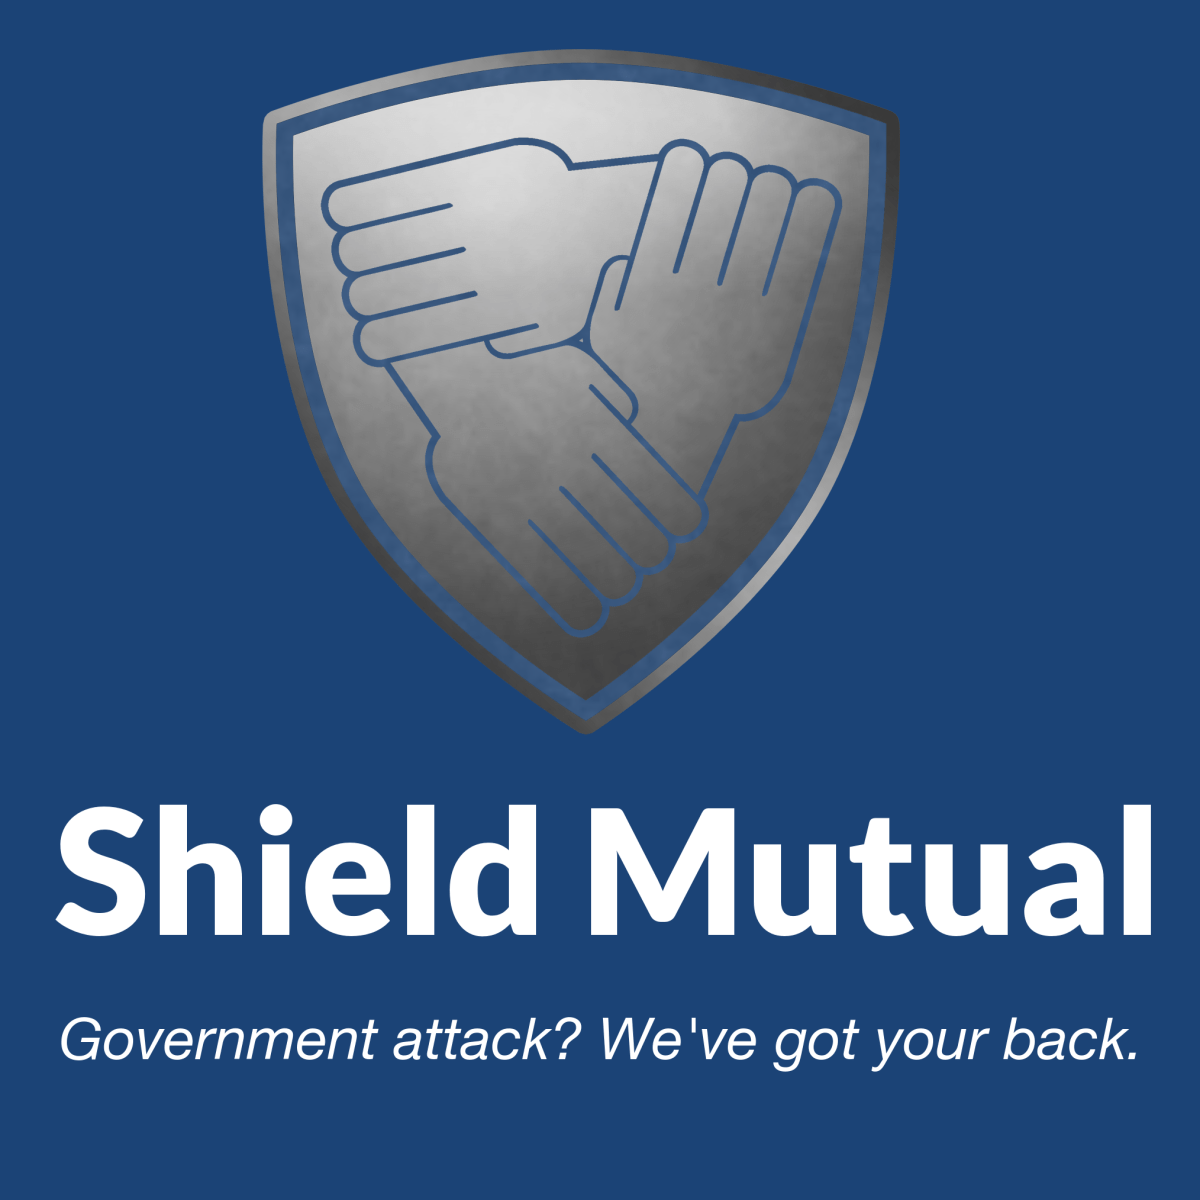 Shield Mutual is the agora's first defense agency.